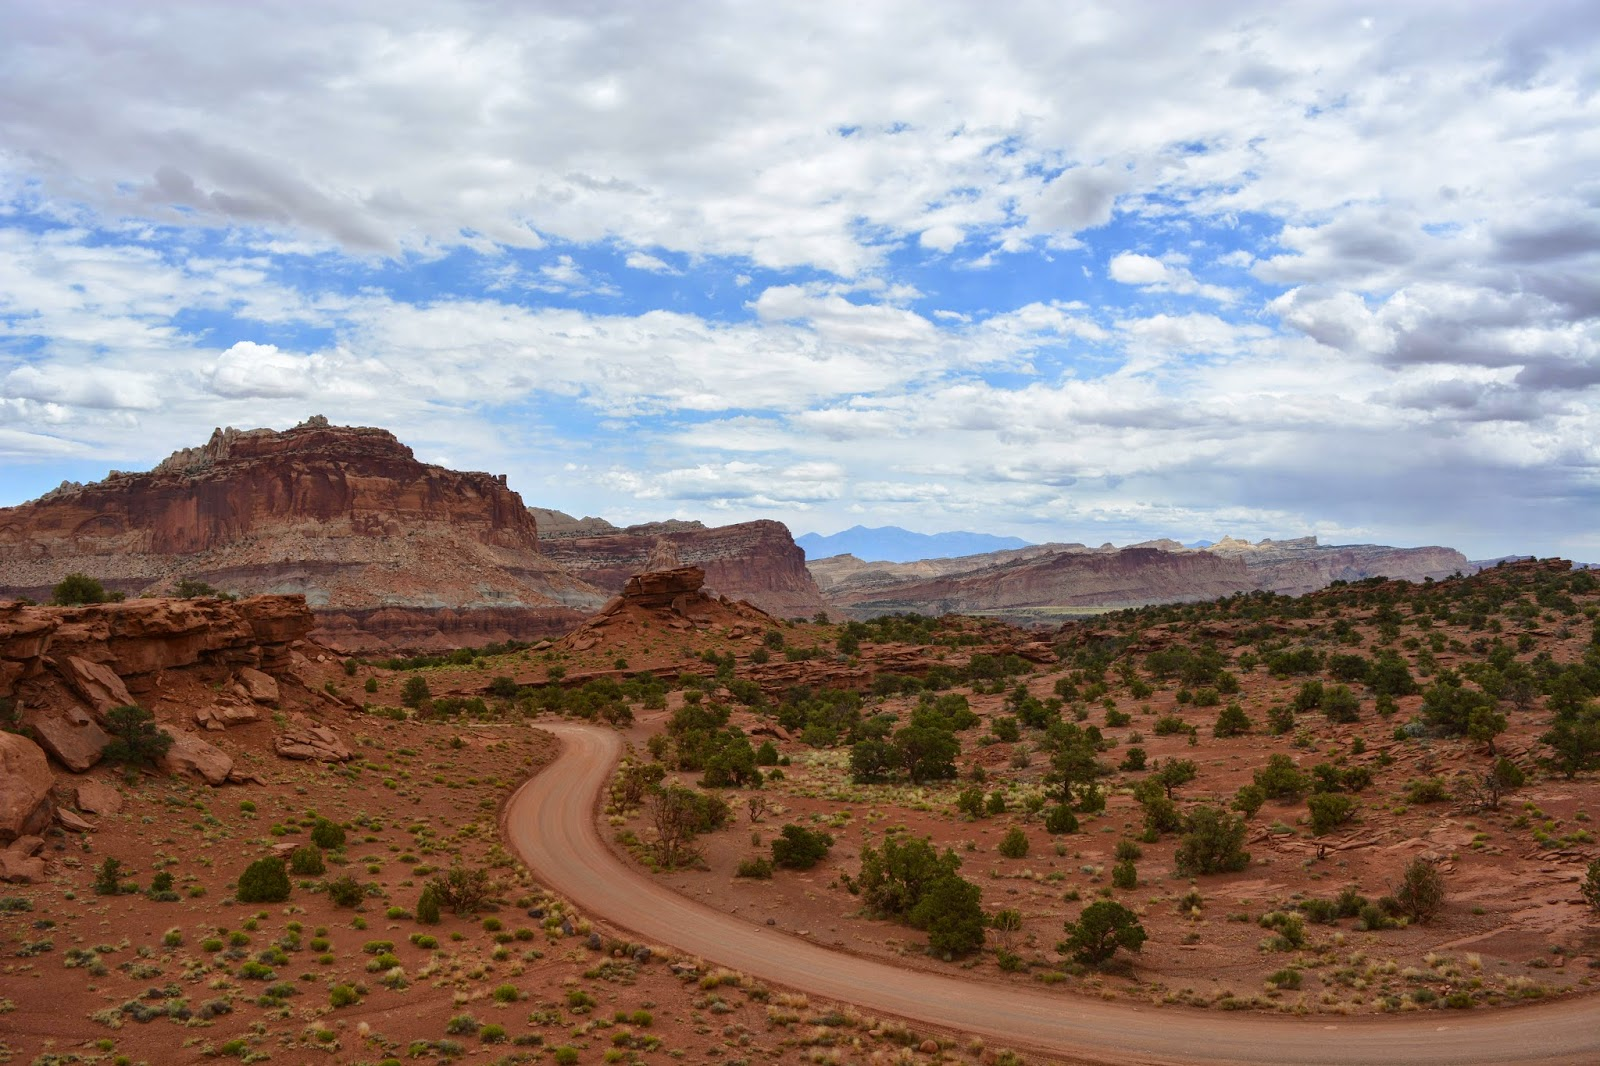 Capitol Reef National Park 圓頂礁國家公園 (上)